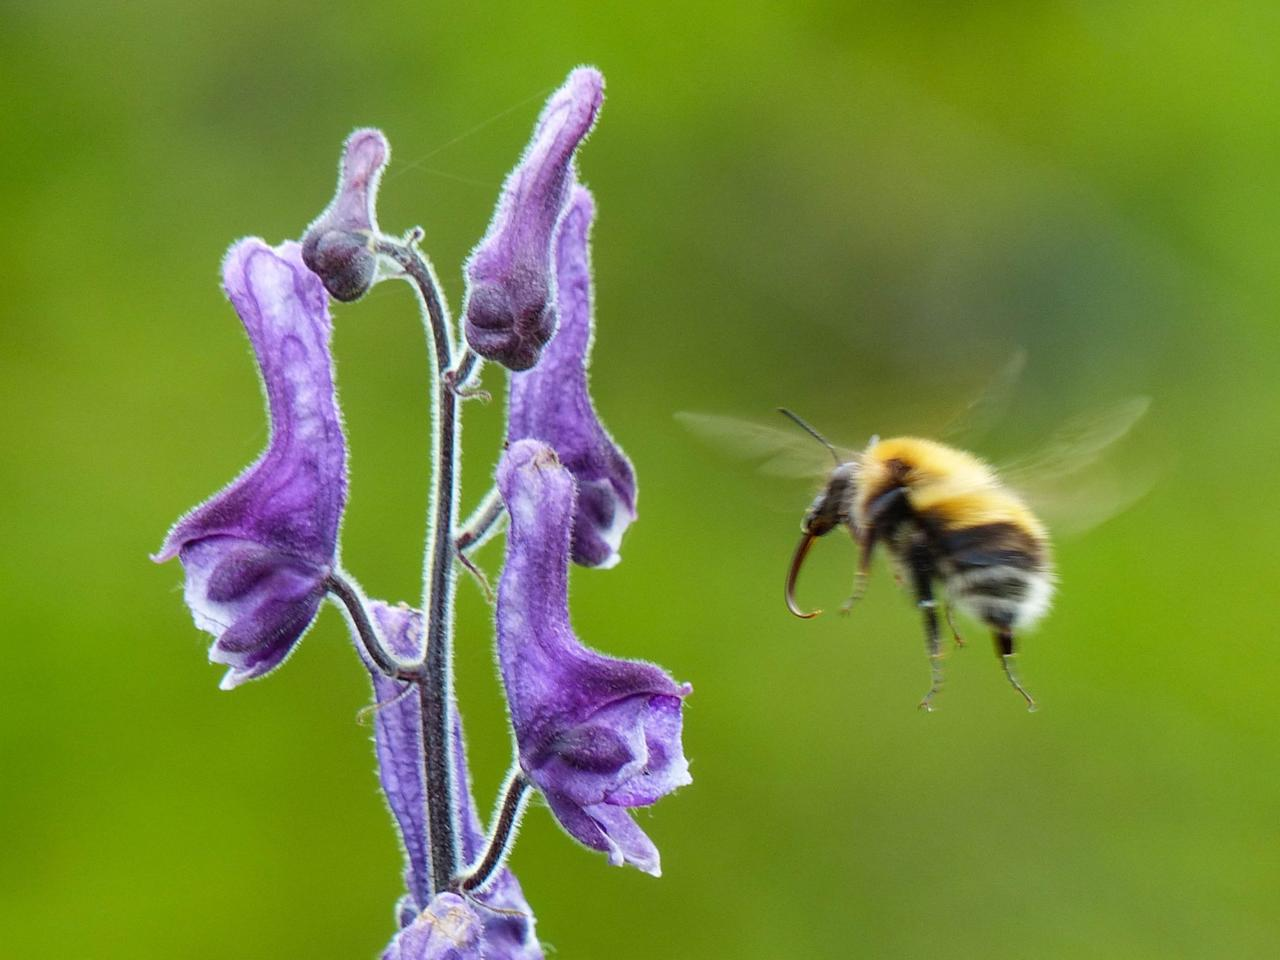 <p>A bee hovers close to a purple flower in front of a vivid green background. (Elin Videvall/SWNS) </p>